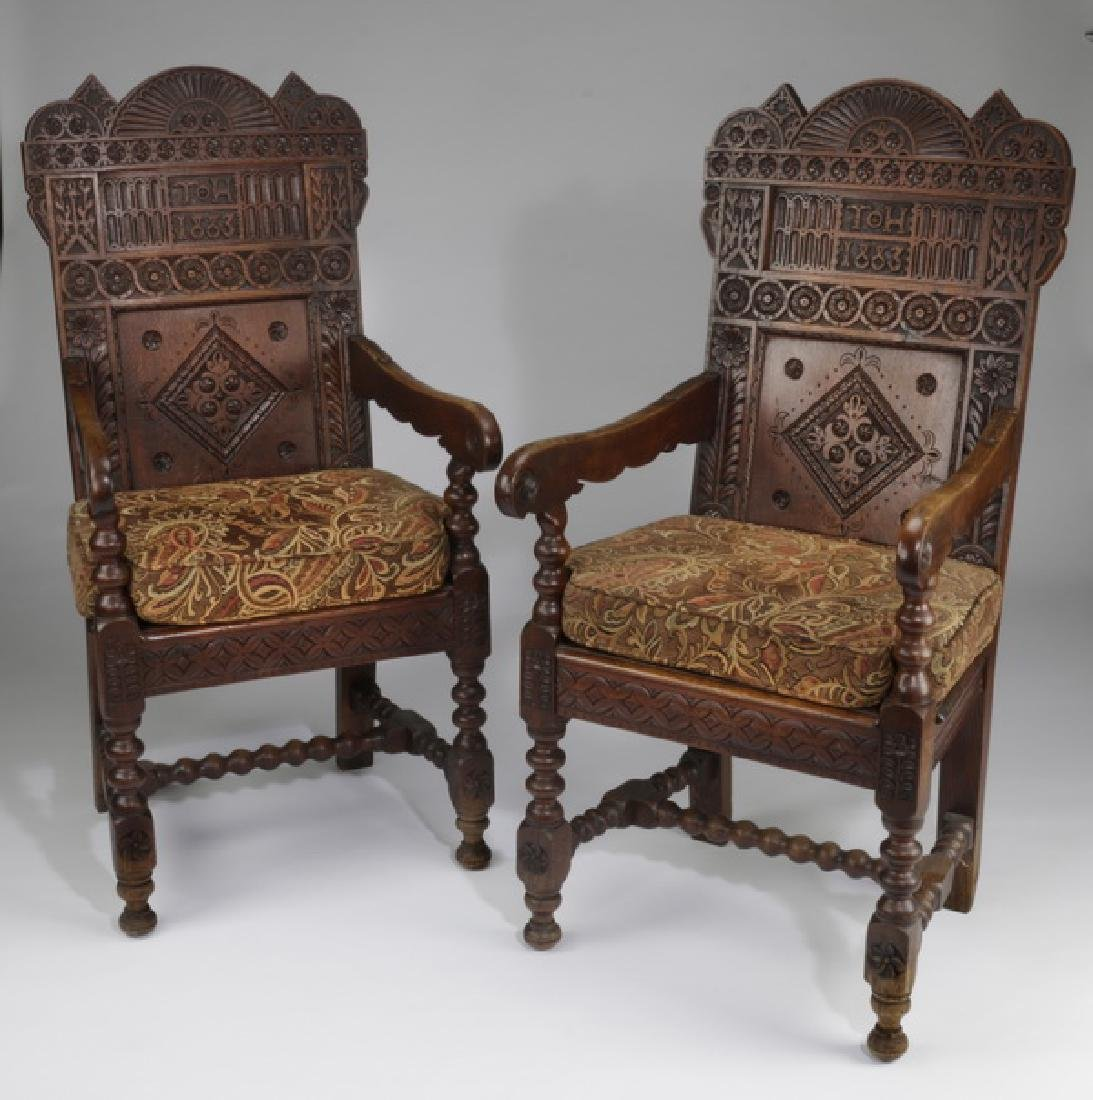 (2) 19th c. Jacobean Revival carved oak armchairs